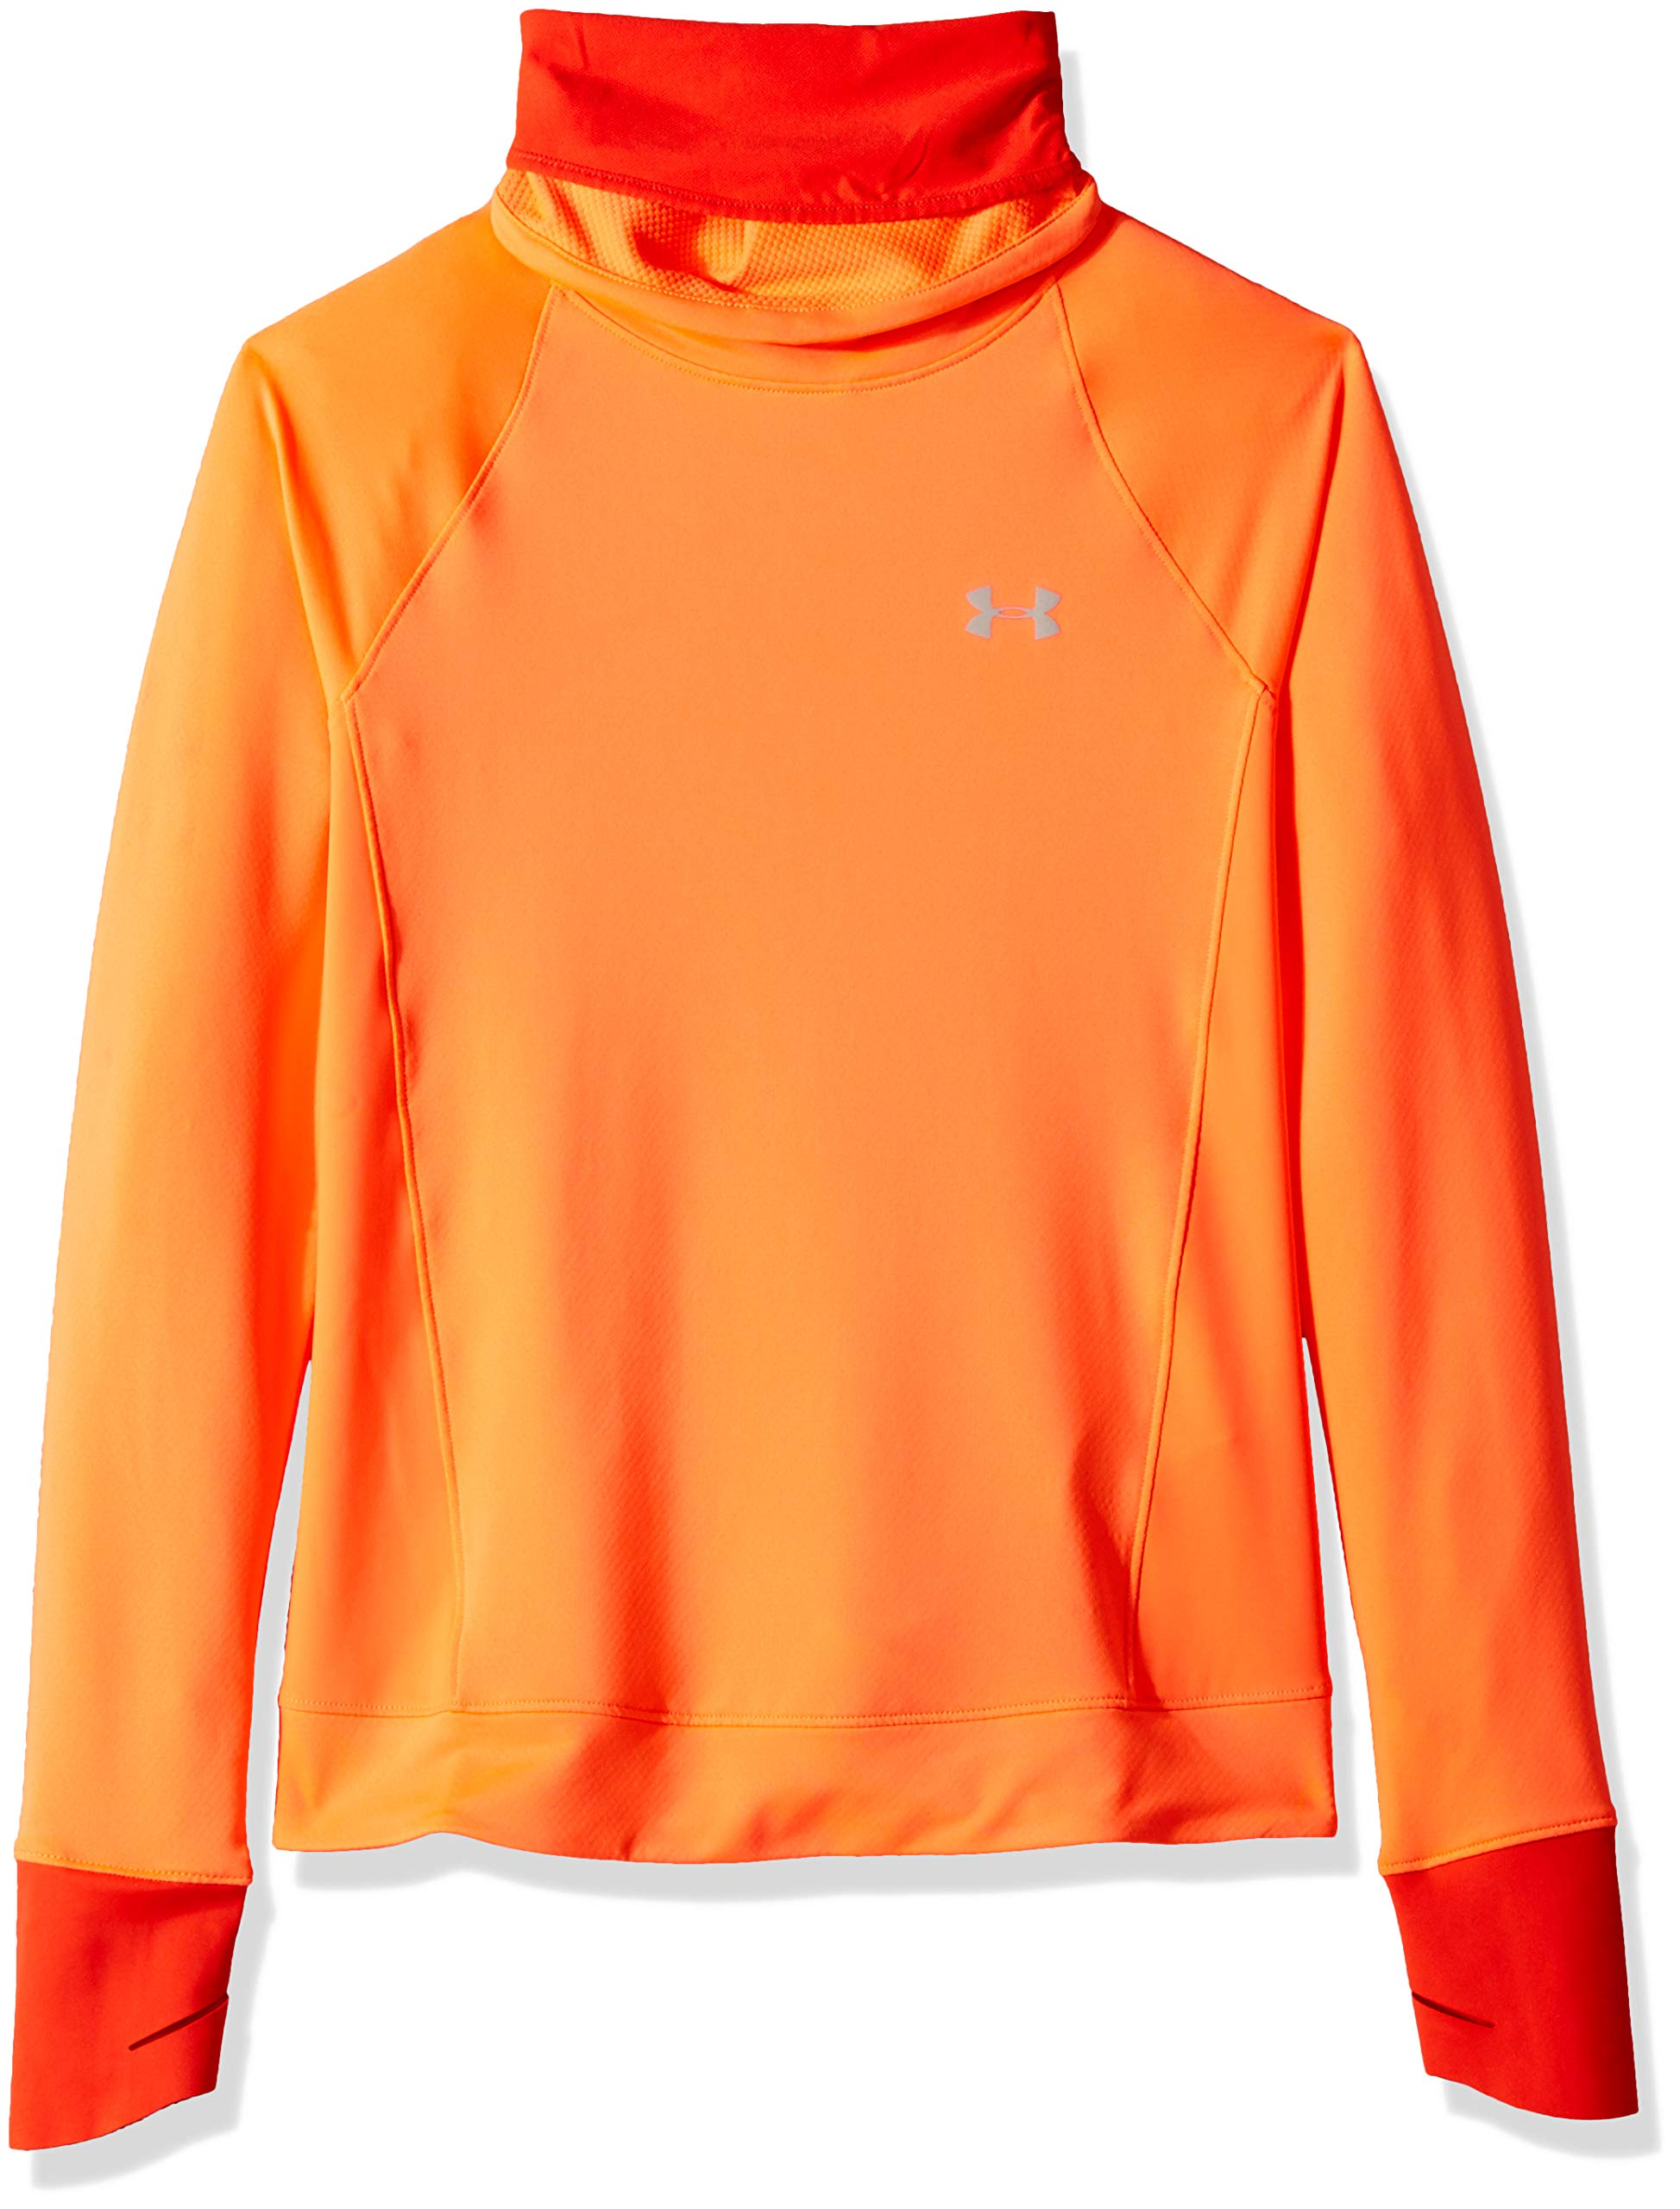 Under Armour Women's Coldgear Reactor Run Funnel, After Burn (877)/Reflective, Medium